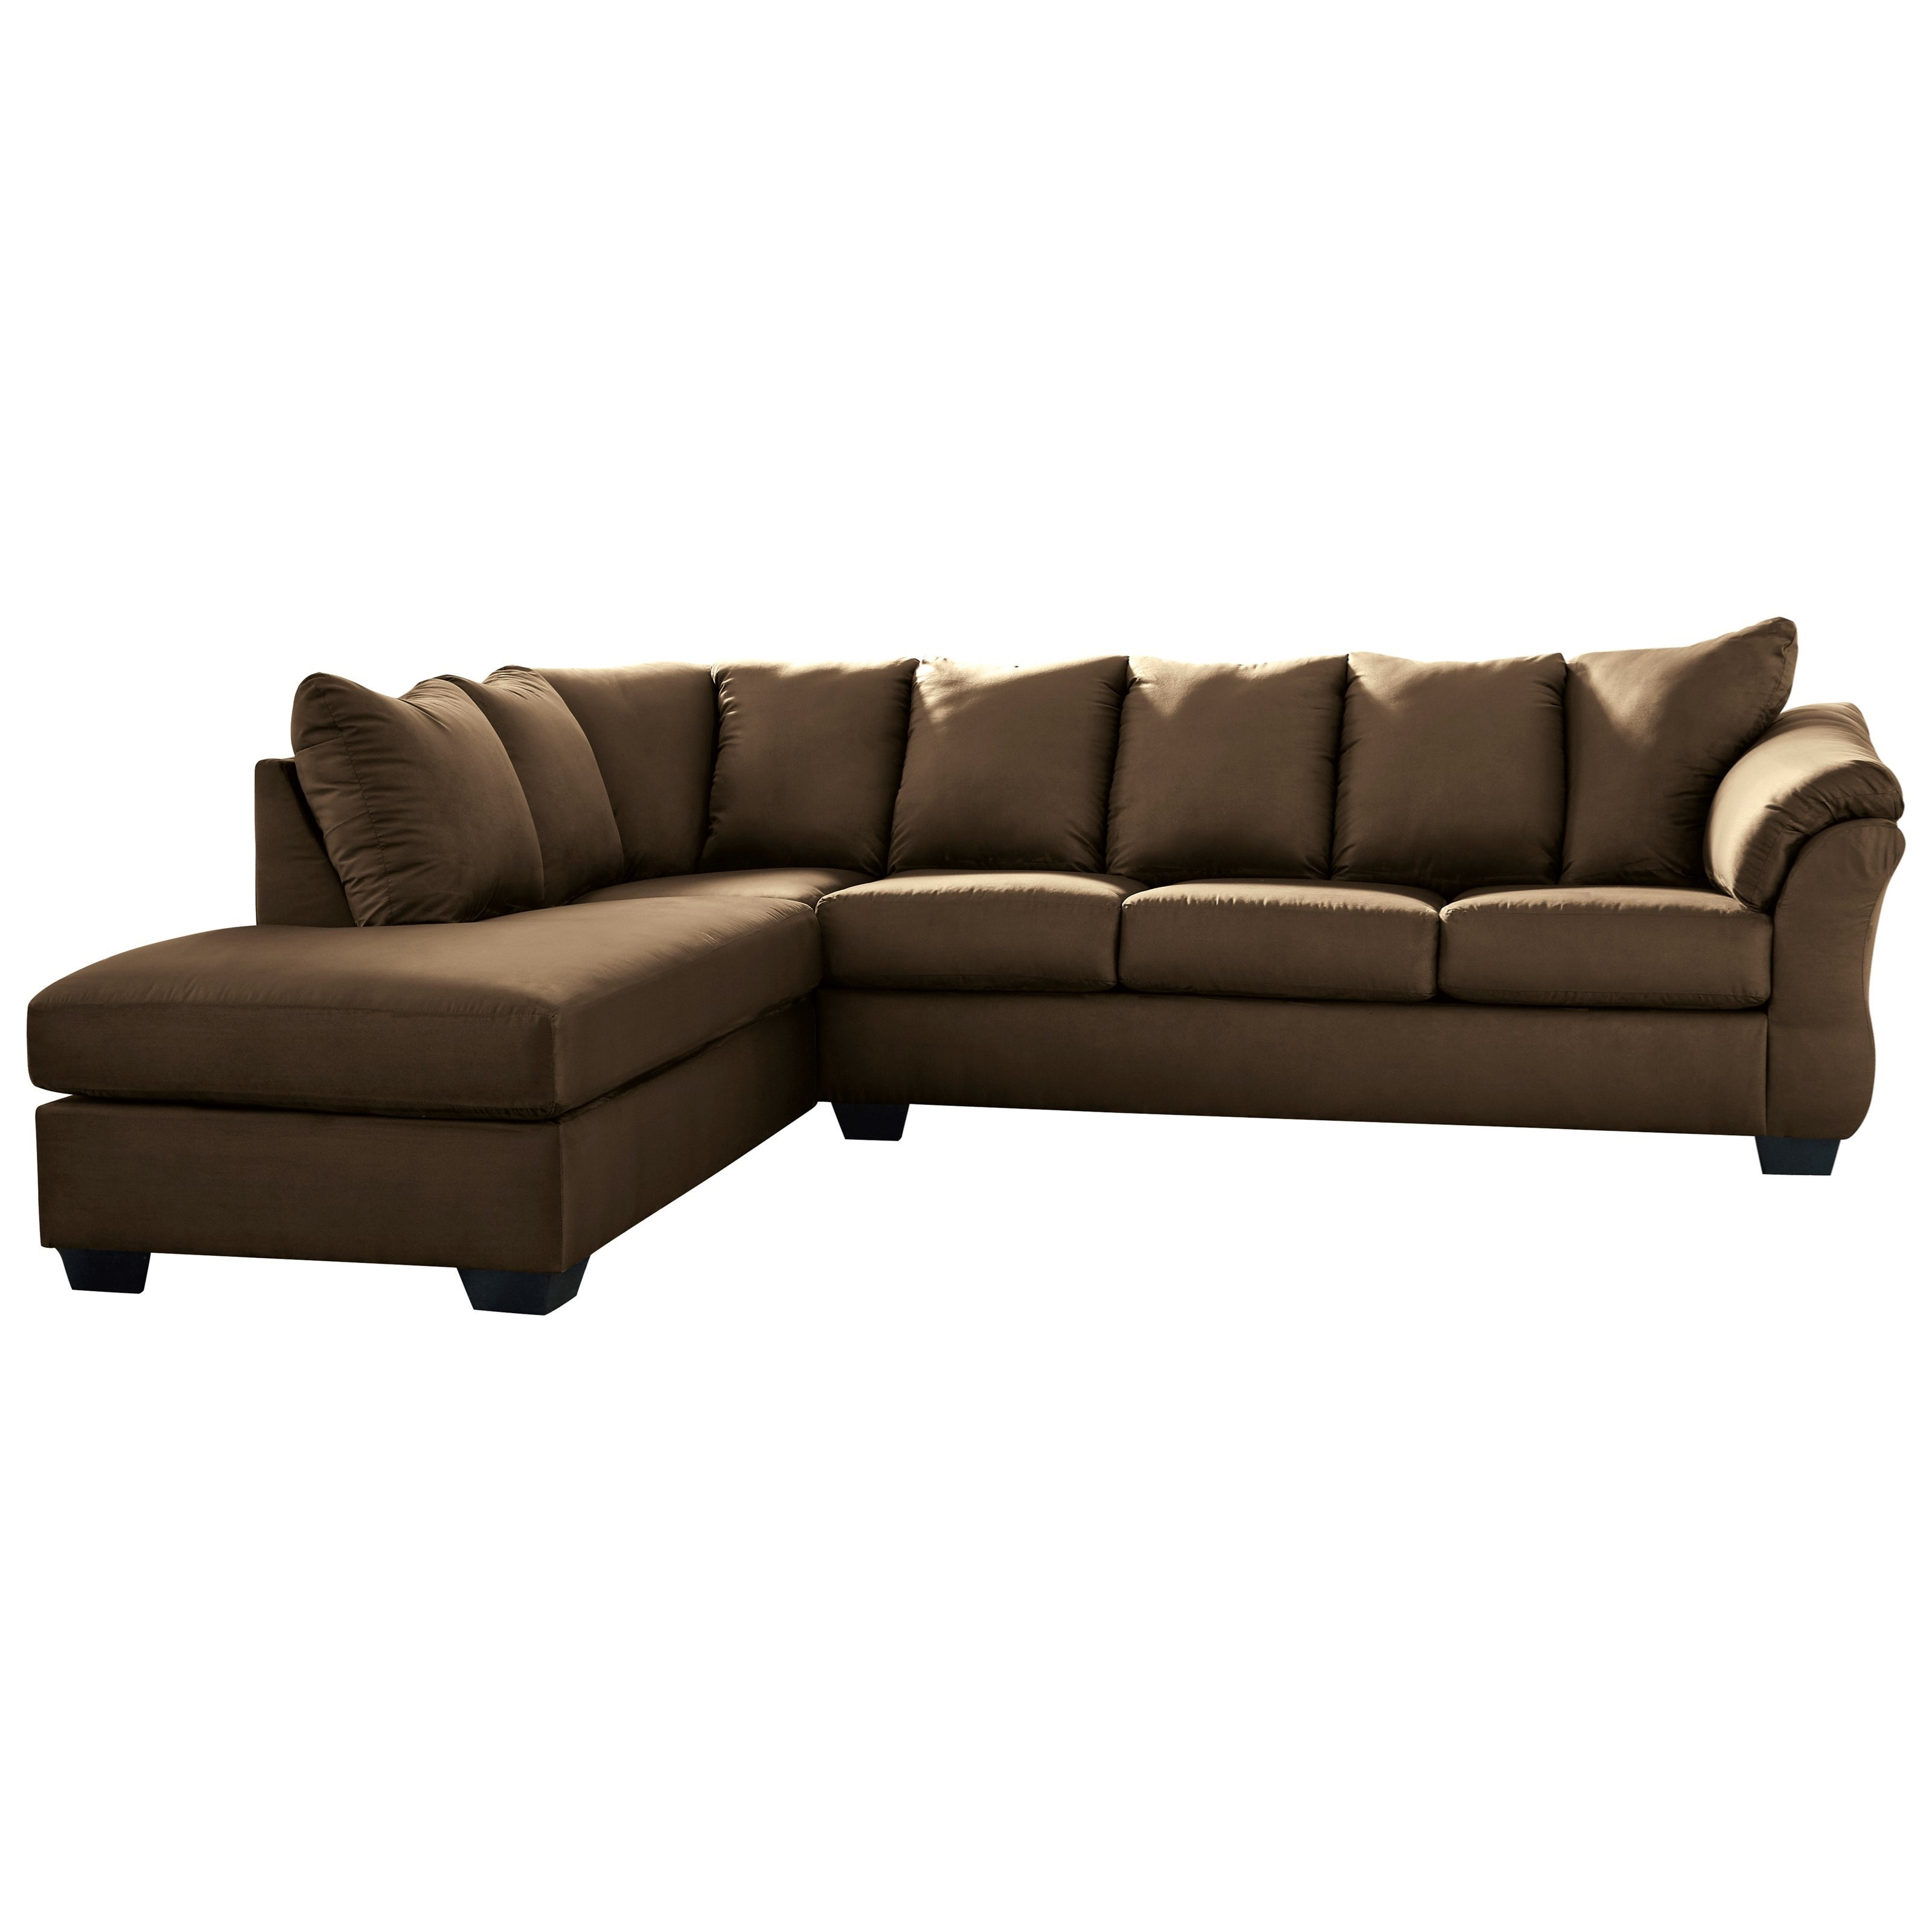 2 piece sectional sofa with left chaise